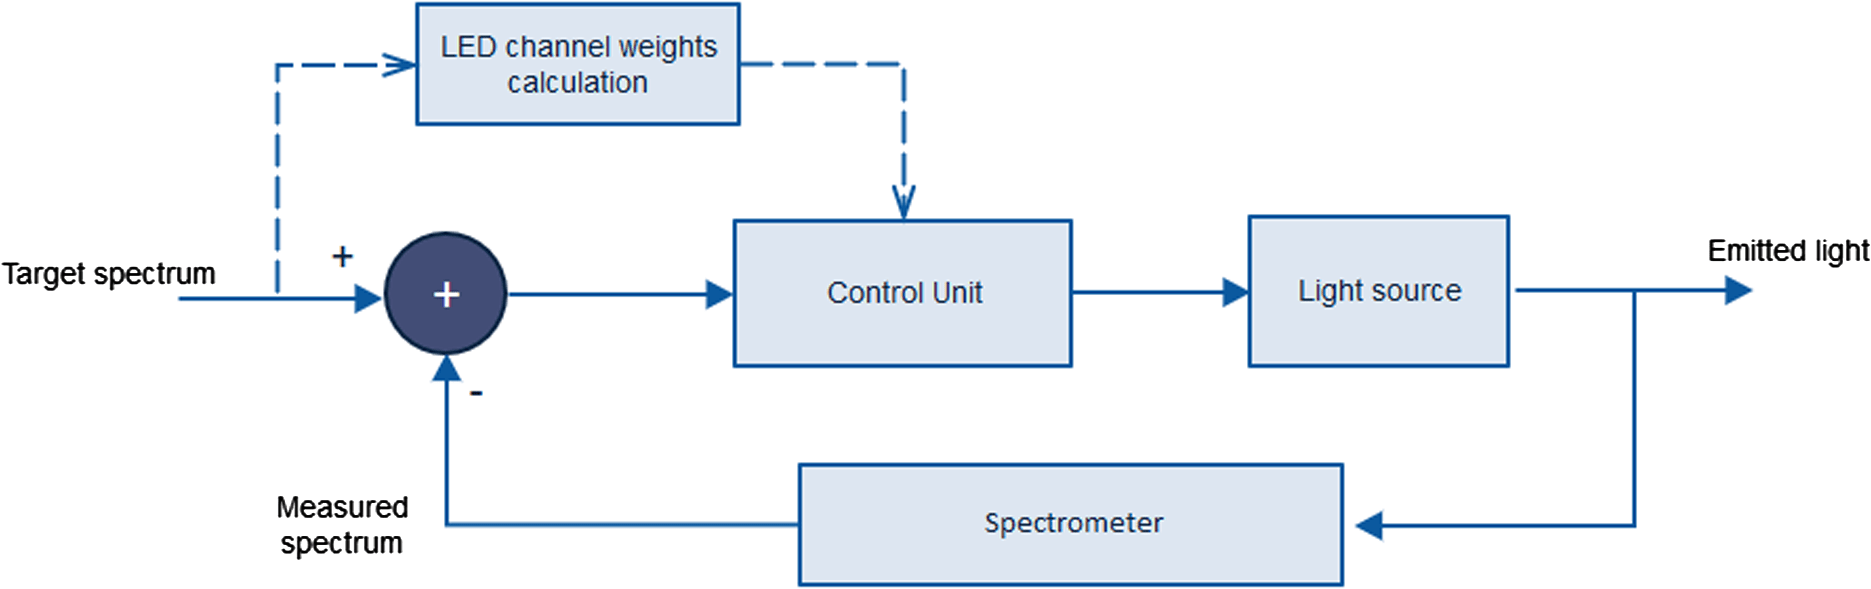 hight resolution of schematic of the implemented close loop feedback system